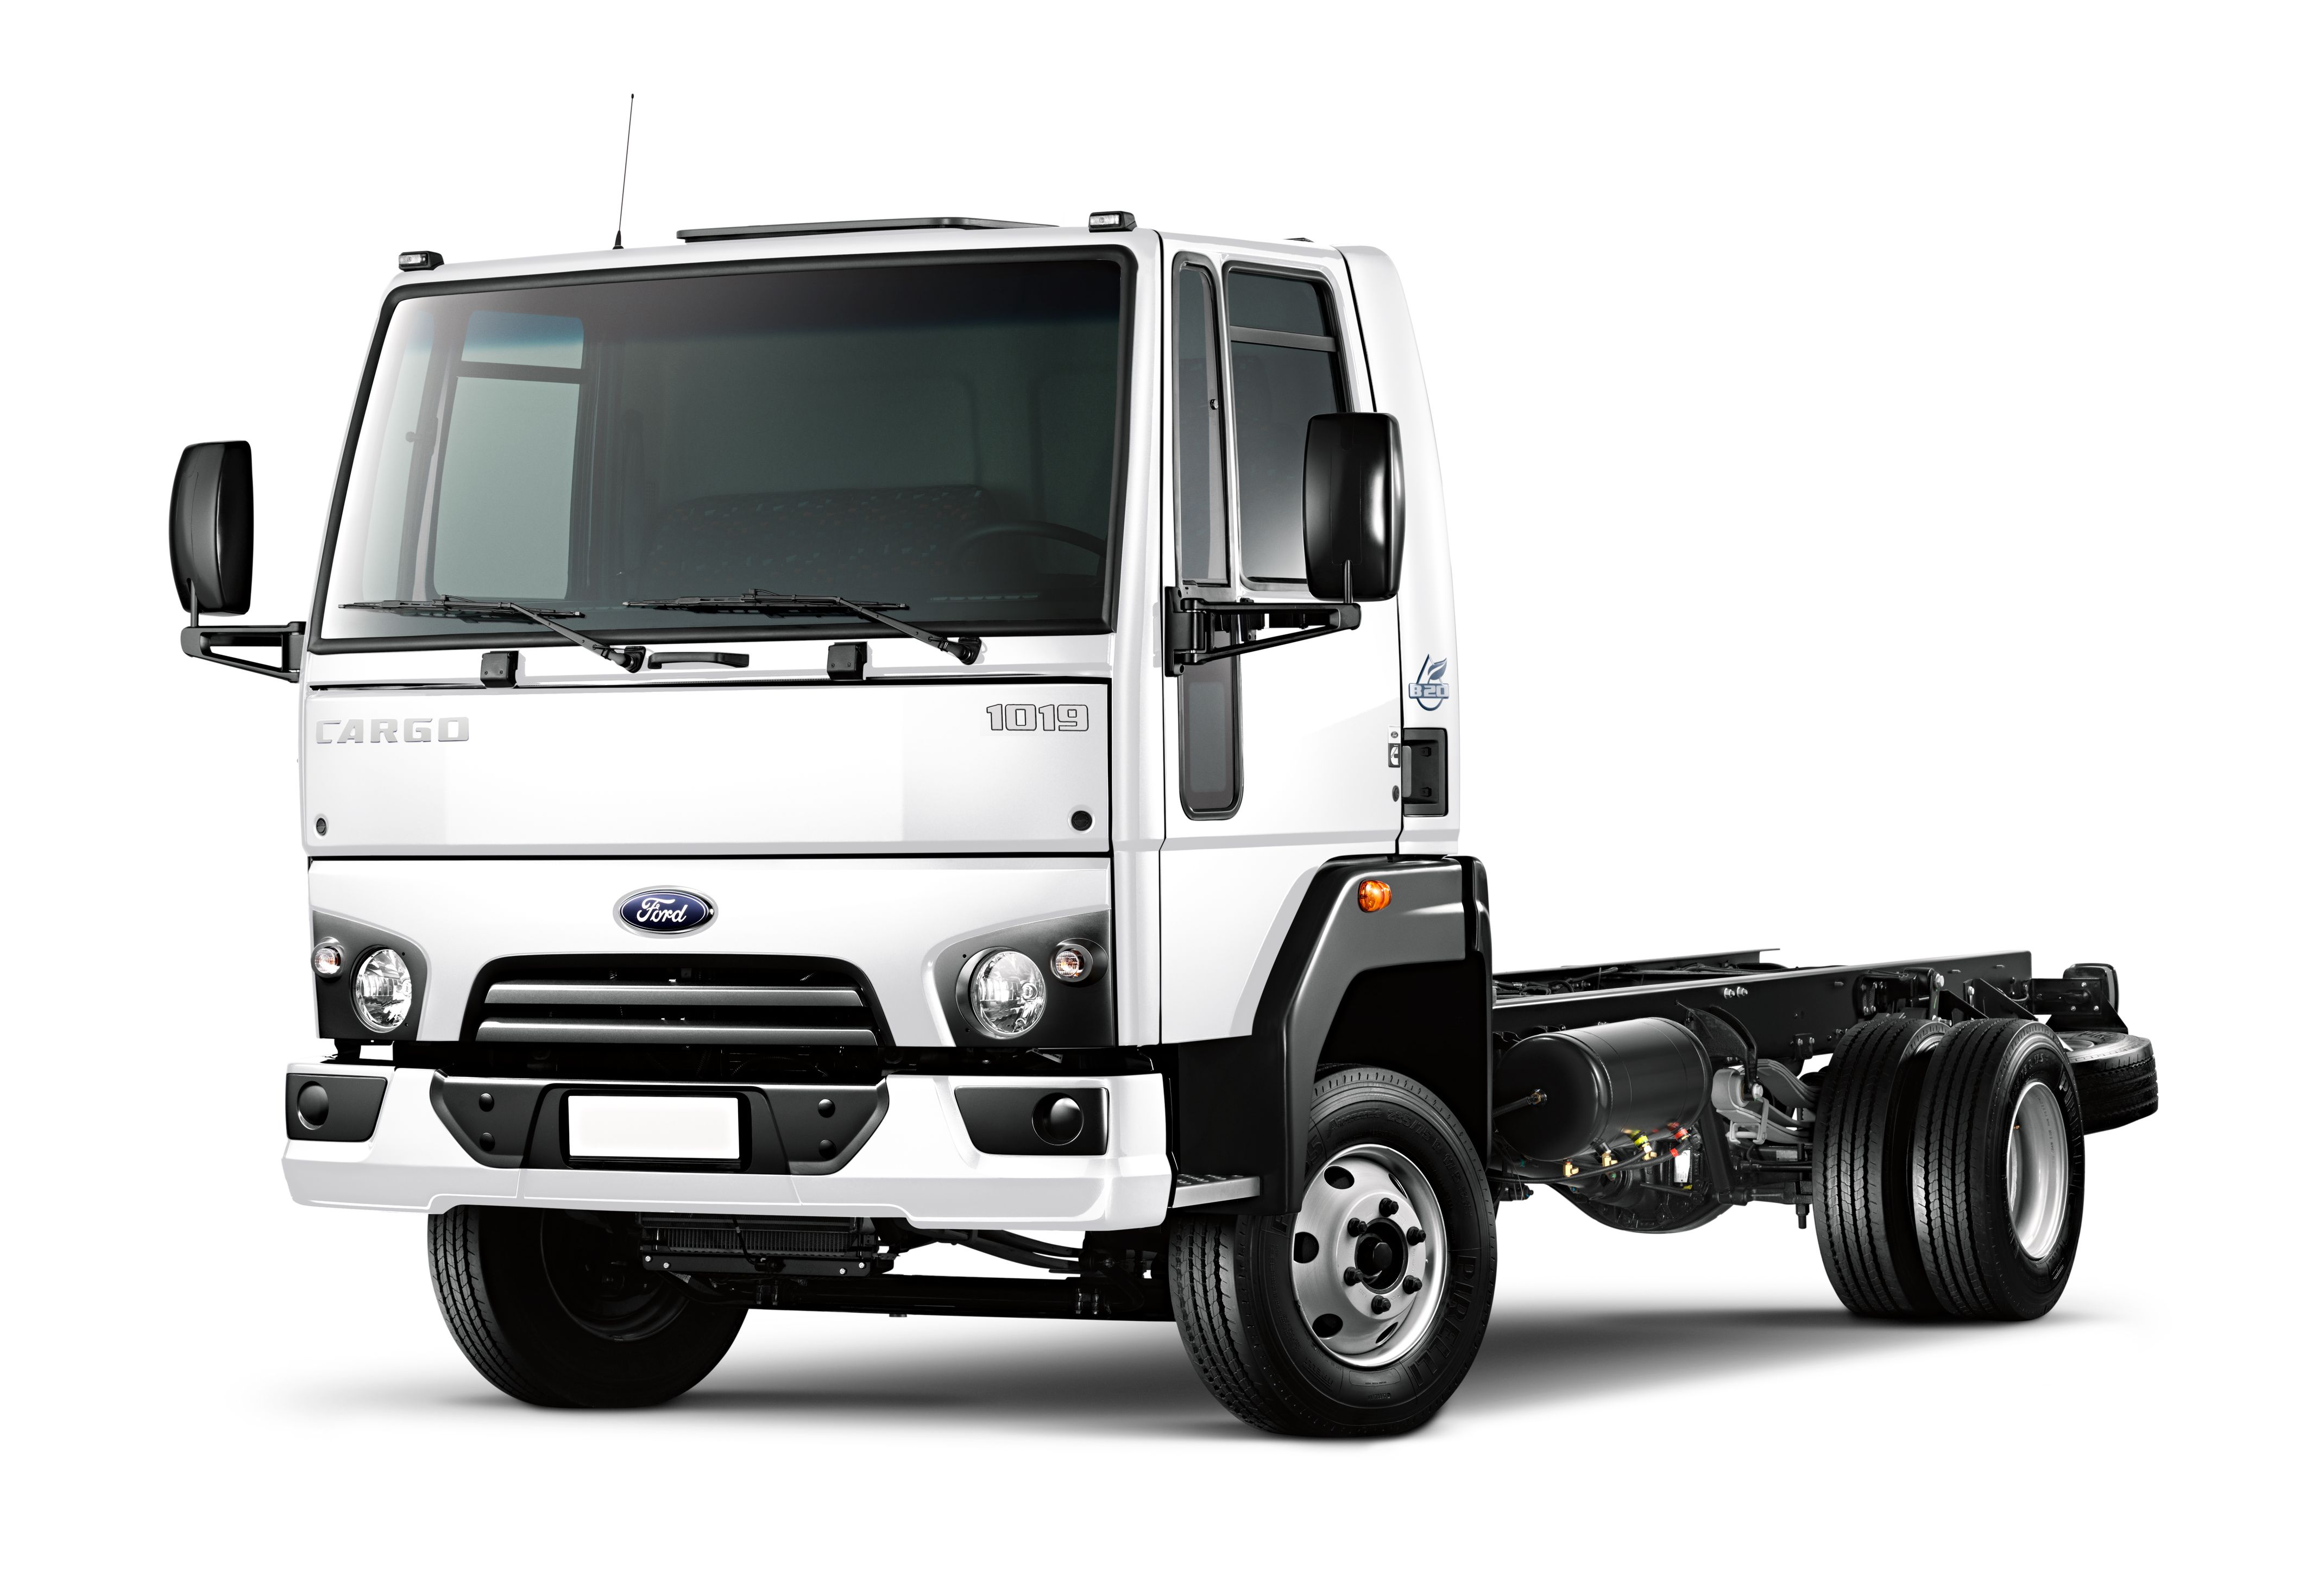 ford cargo colombia, camiones ford colombia